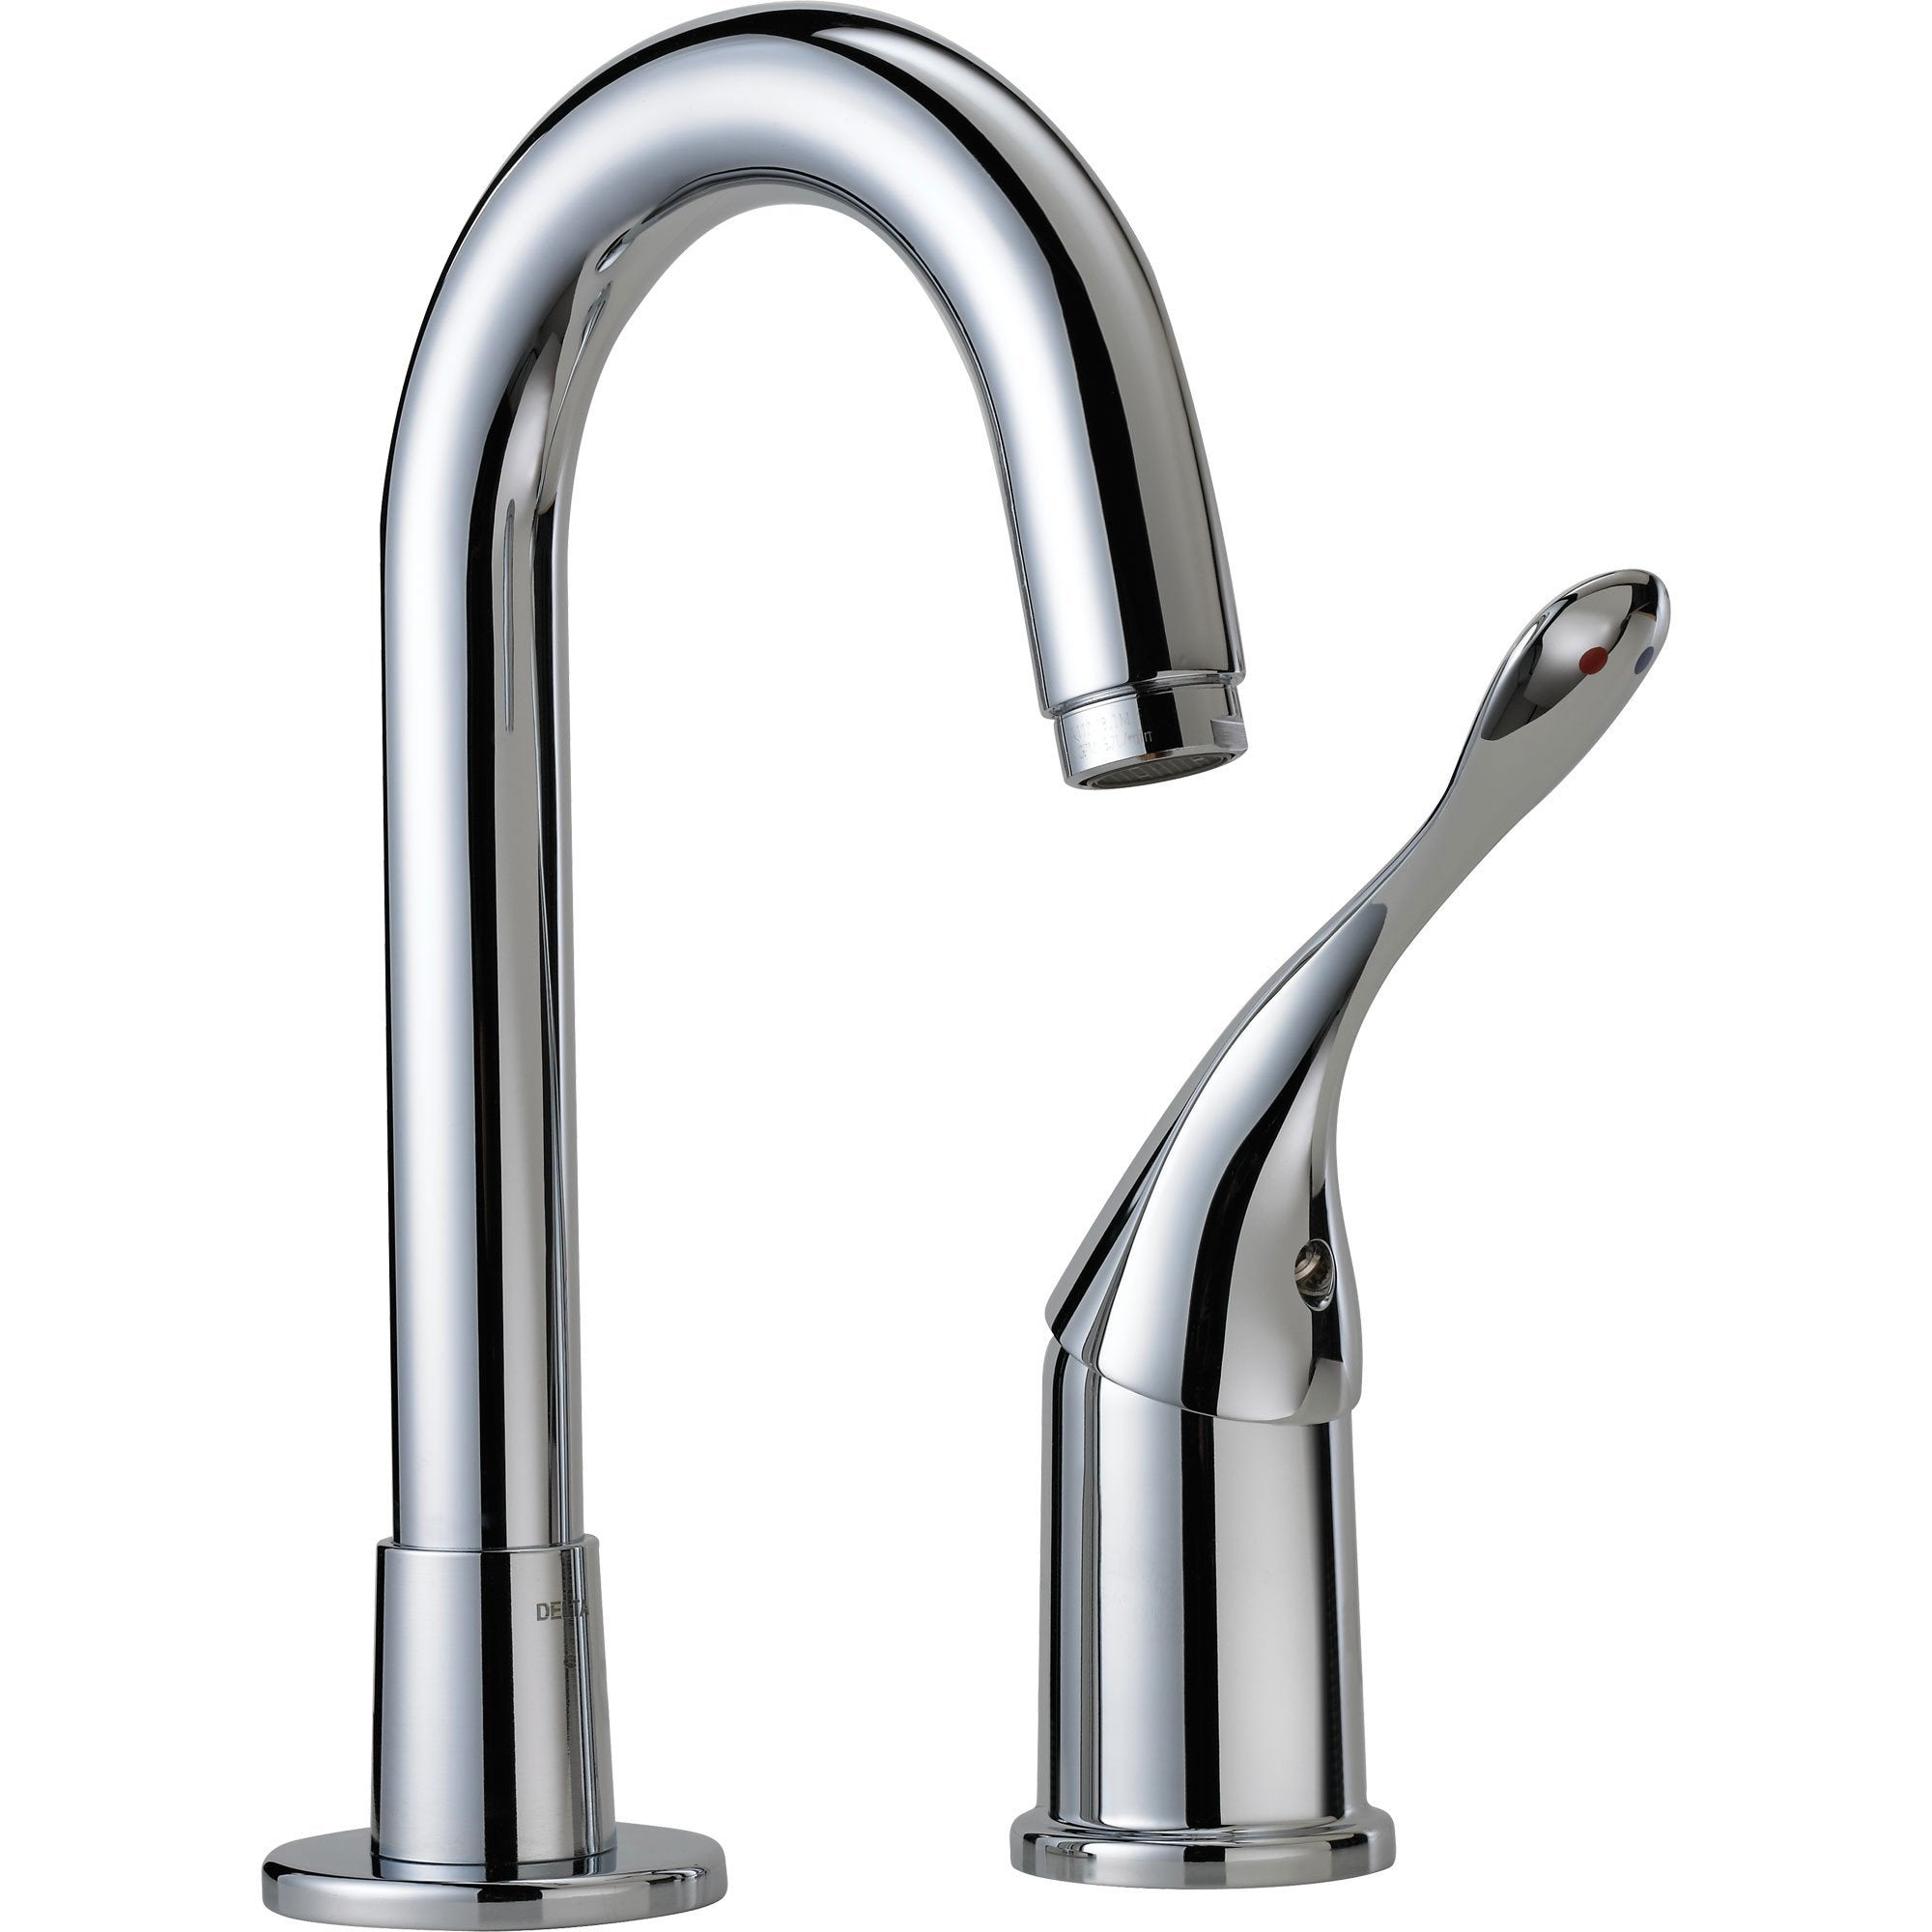 Delta Commercial Single Handle Bar Faucet in Chrome 608648